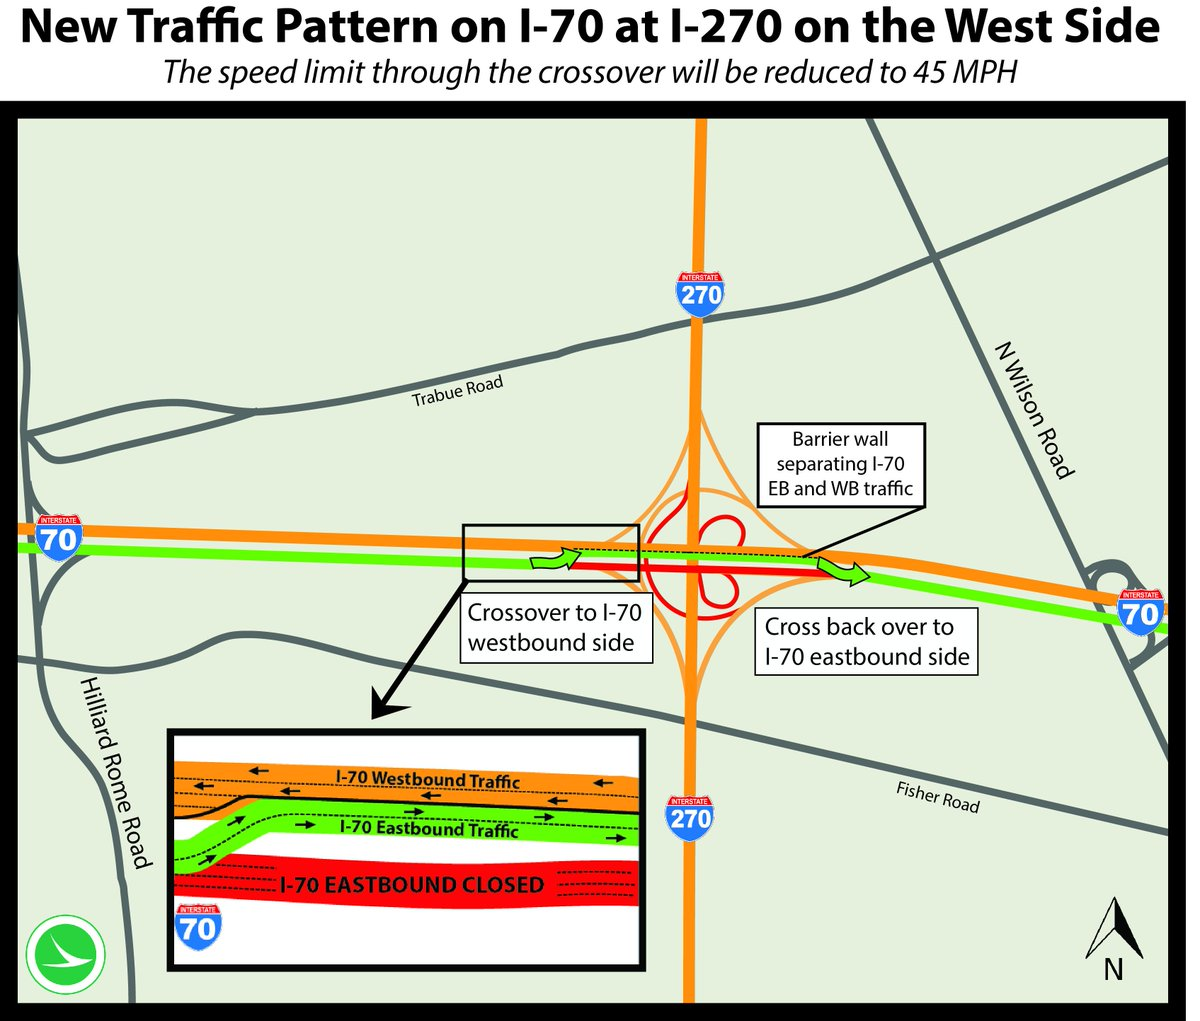 West Side: When I-70 EB opens by noon tomorrow, here's how traffic will be maintained. RT so drivers are ready. http://t.co/kECIVEotr1